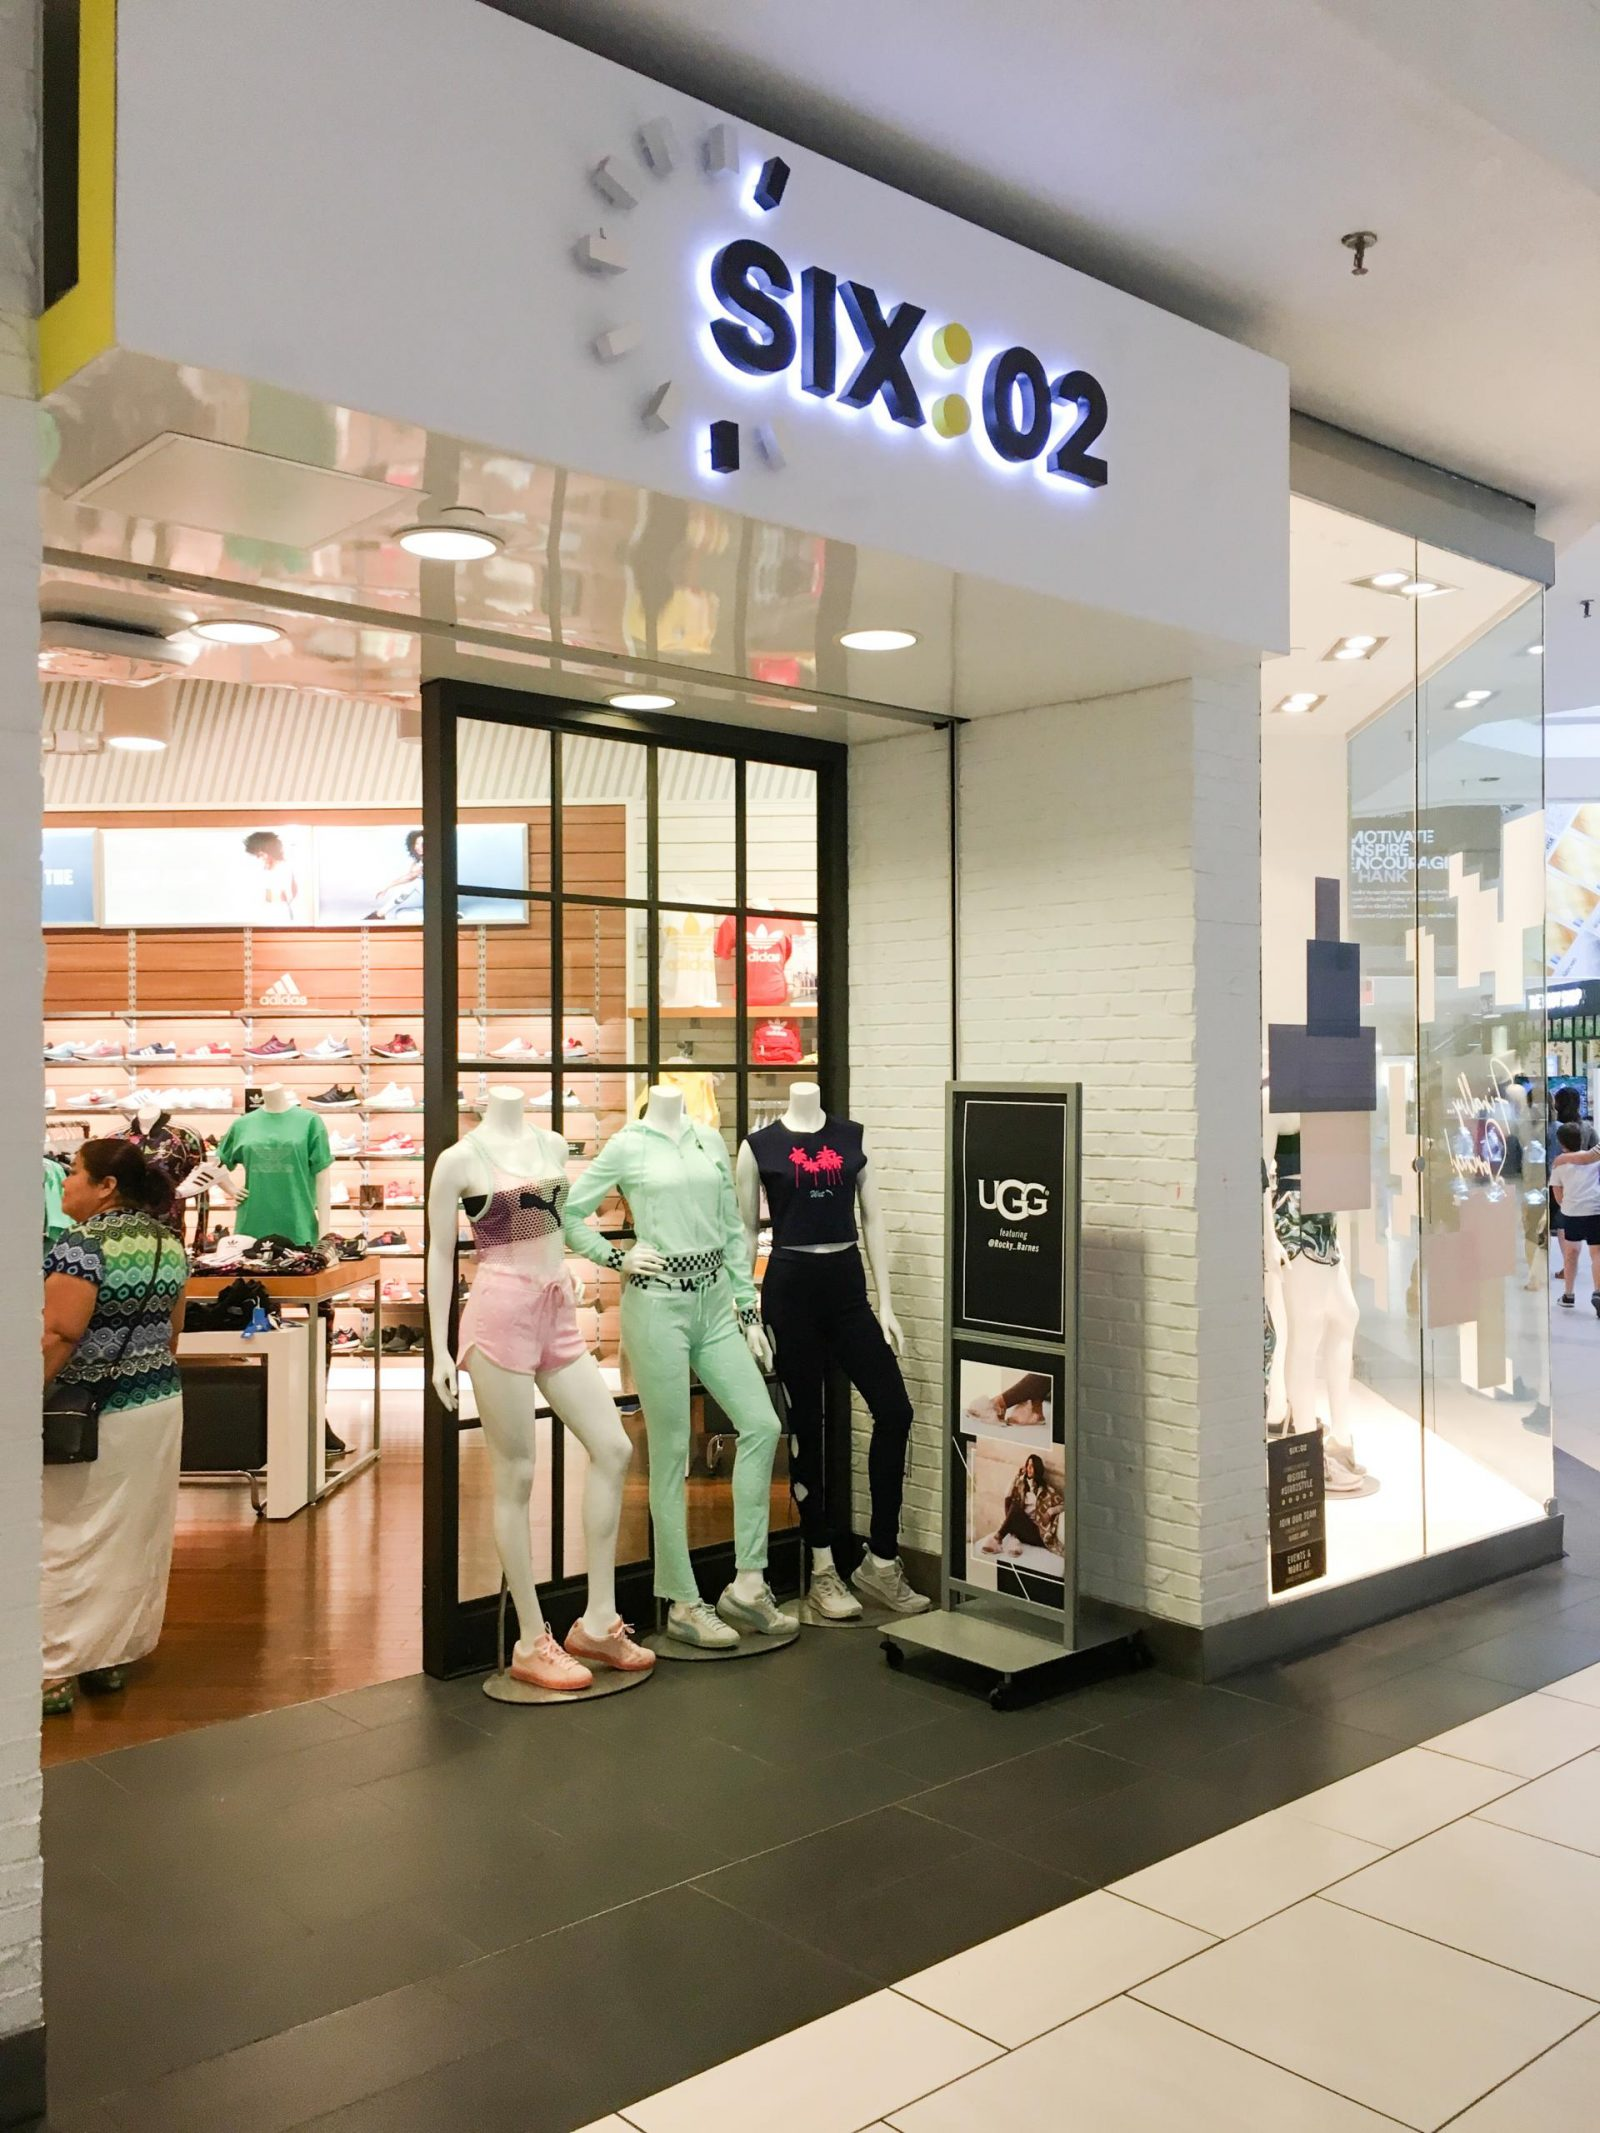 Six:02 at Woodfield Mall in Schaumburg, Illinois! The Best Woodfield Mall Stores in Schaumburg Illinois. Woodfield Mall is one of the biggest malls in America, let me help you decide where to stop first!